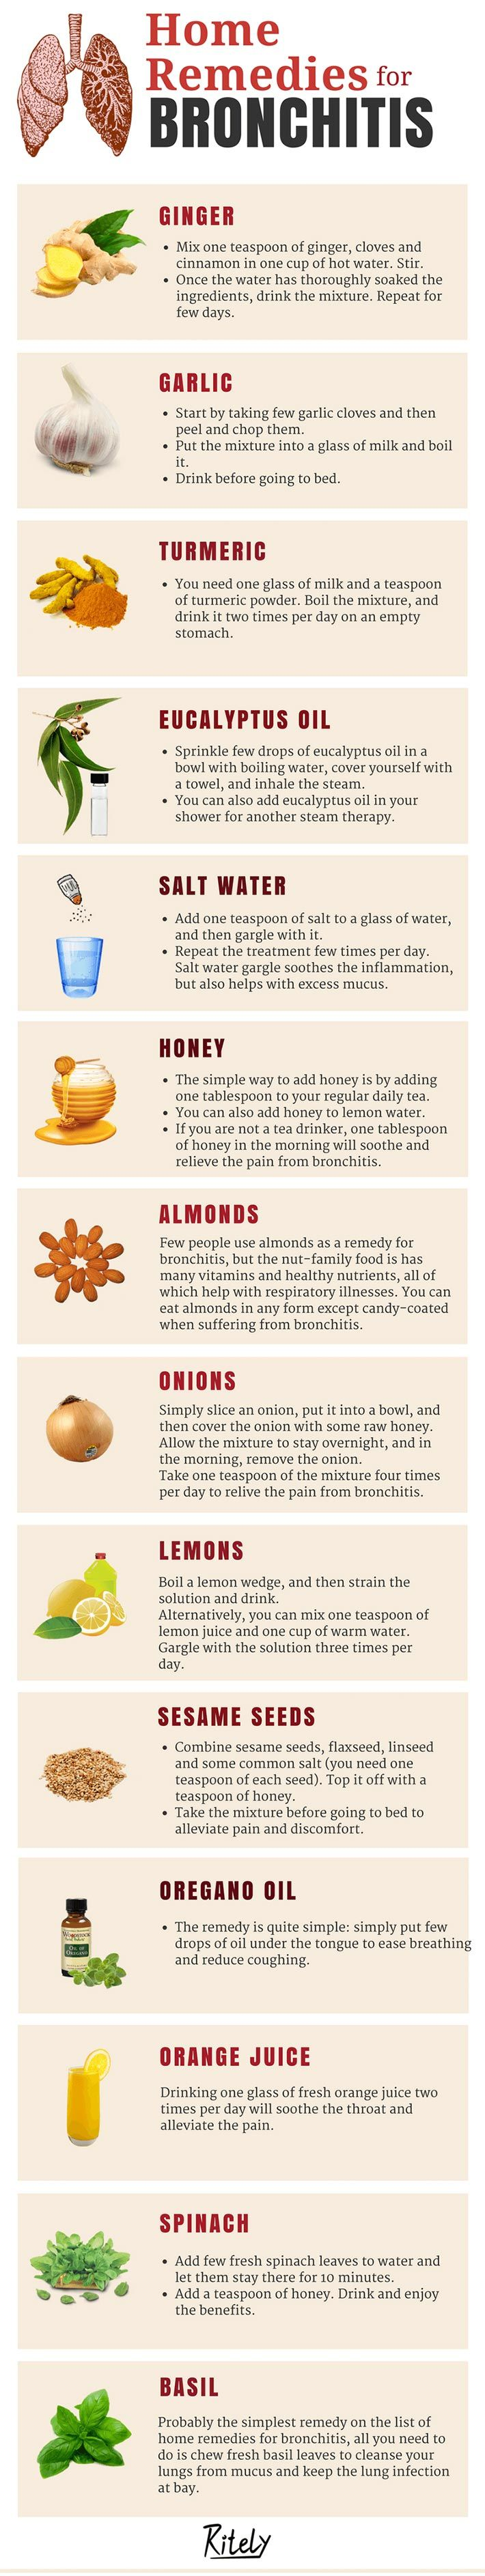 Simple and Natural Home Remedies for Bronchitis!Just when you thought you were shaking the cold, you wake up in the morning with your cough worse than befor